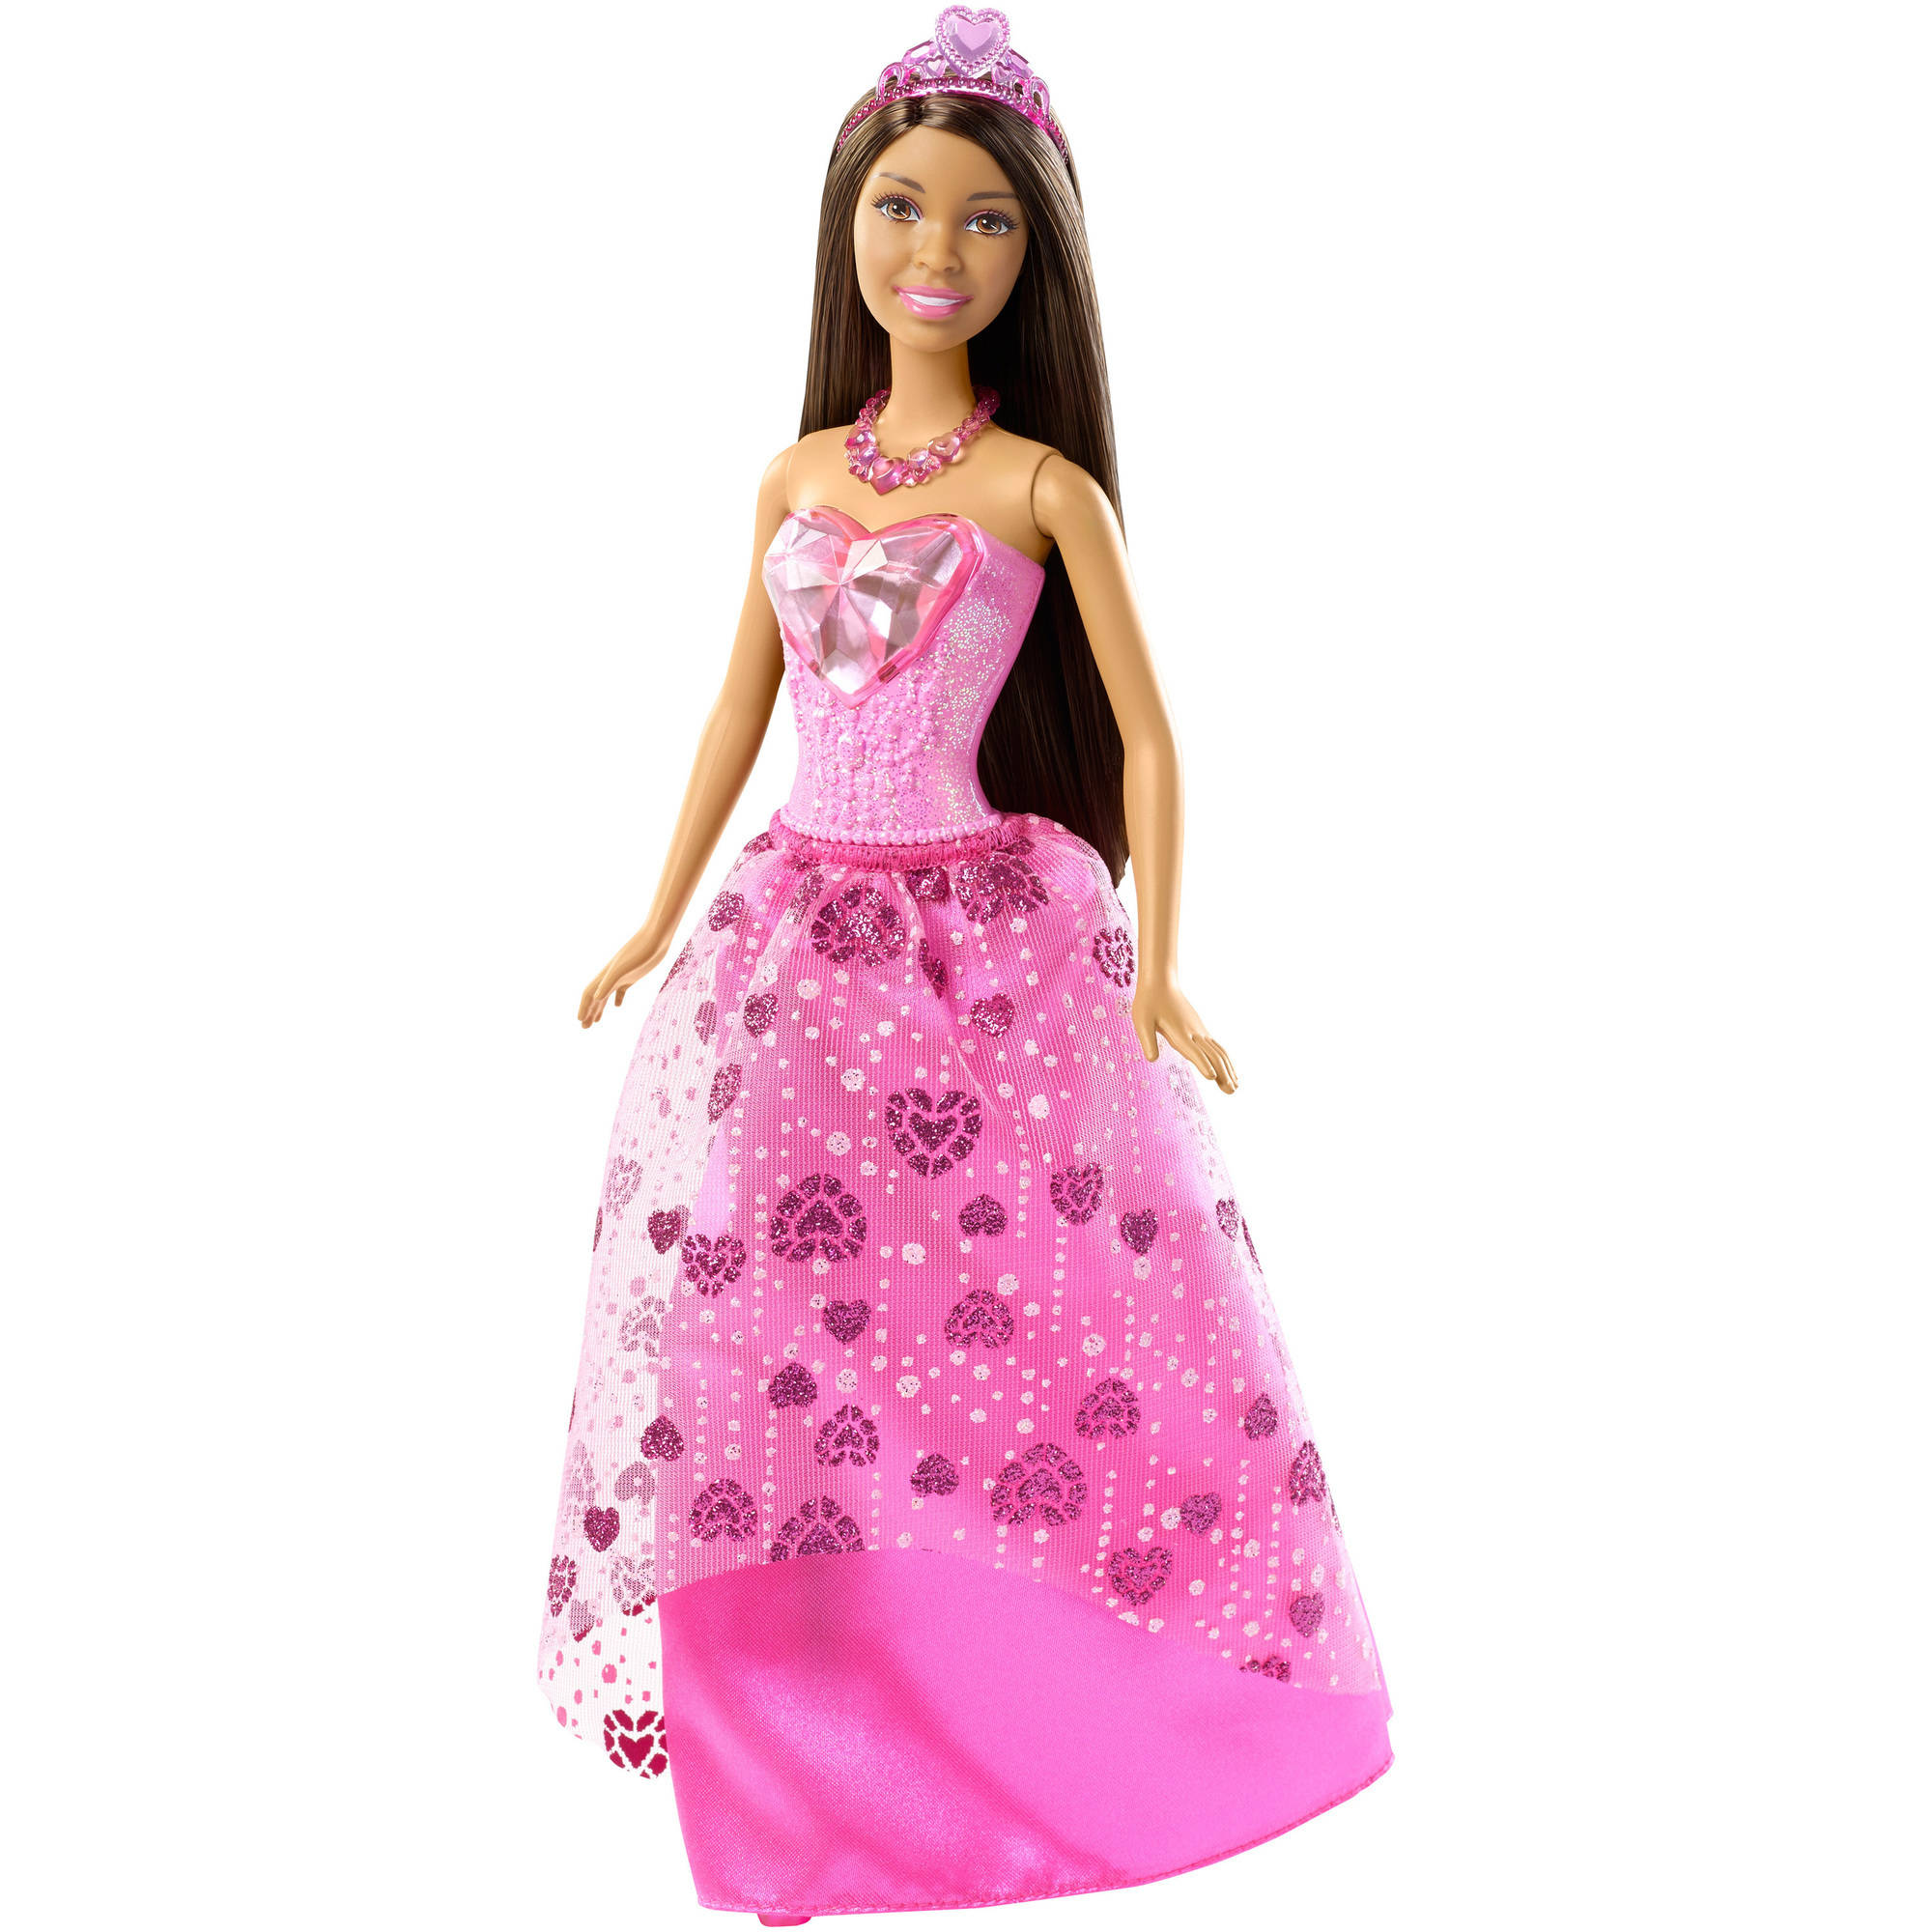 Barbie Princess Nikki Doll